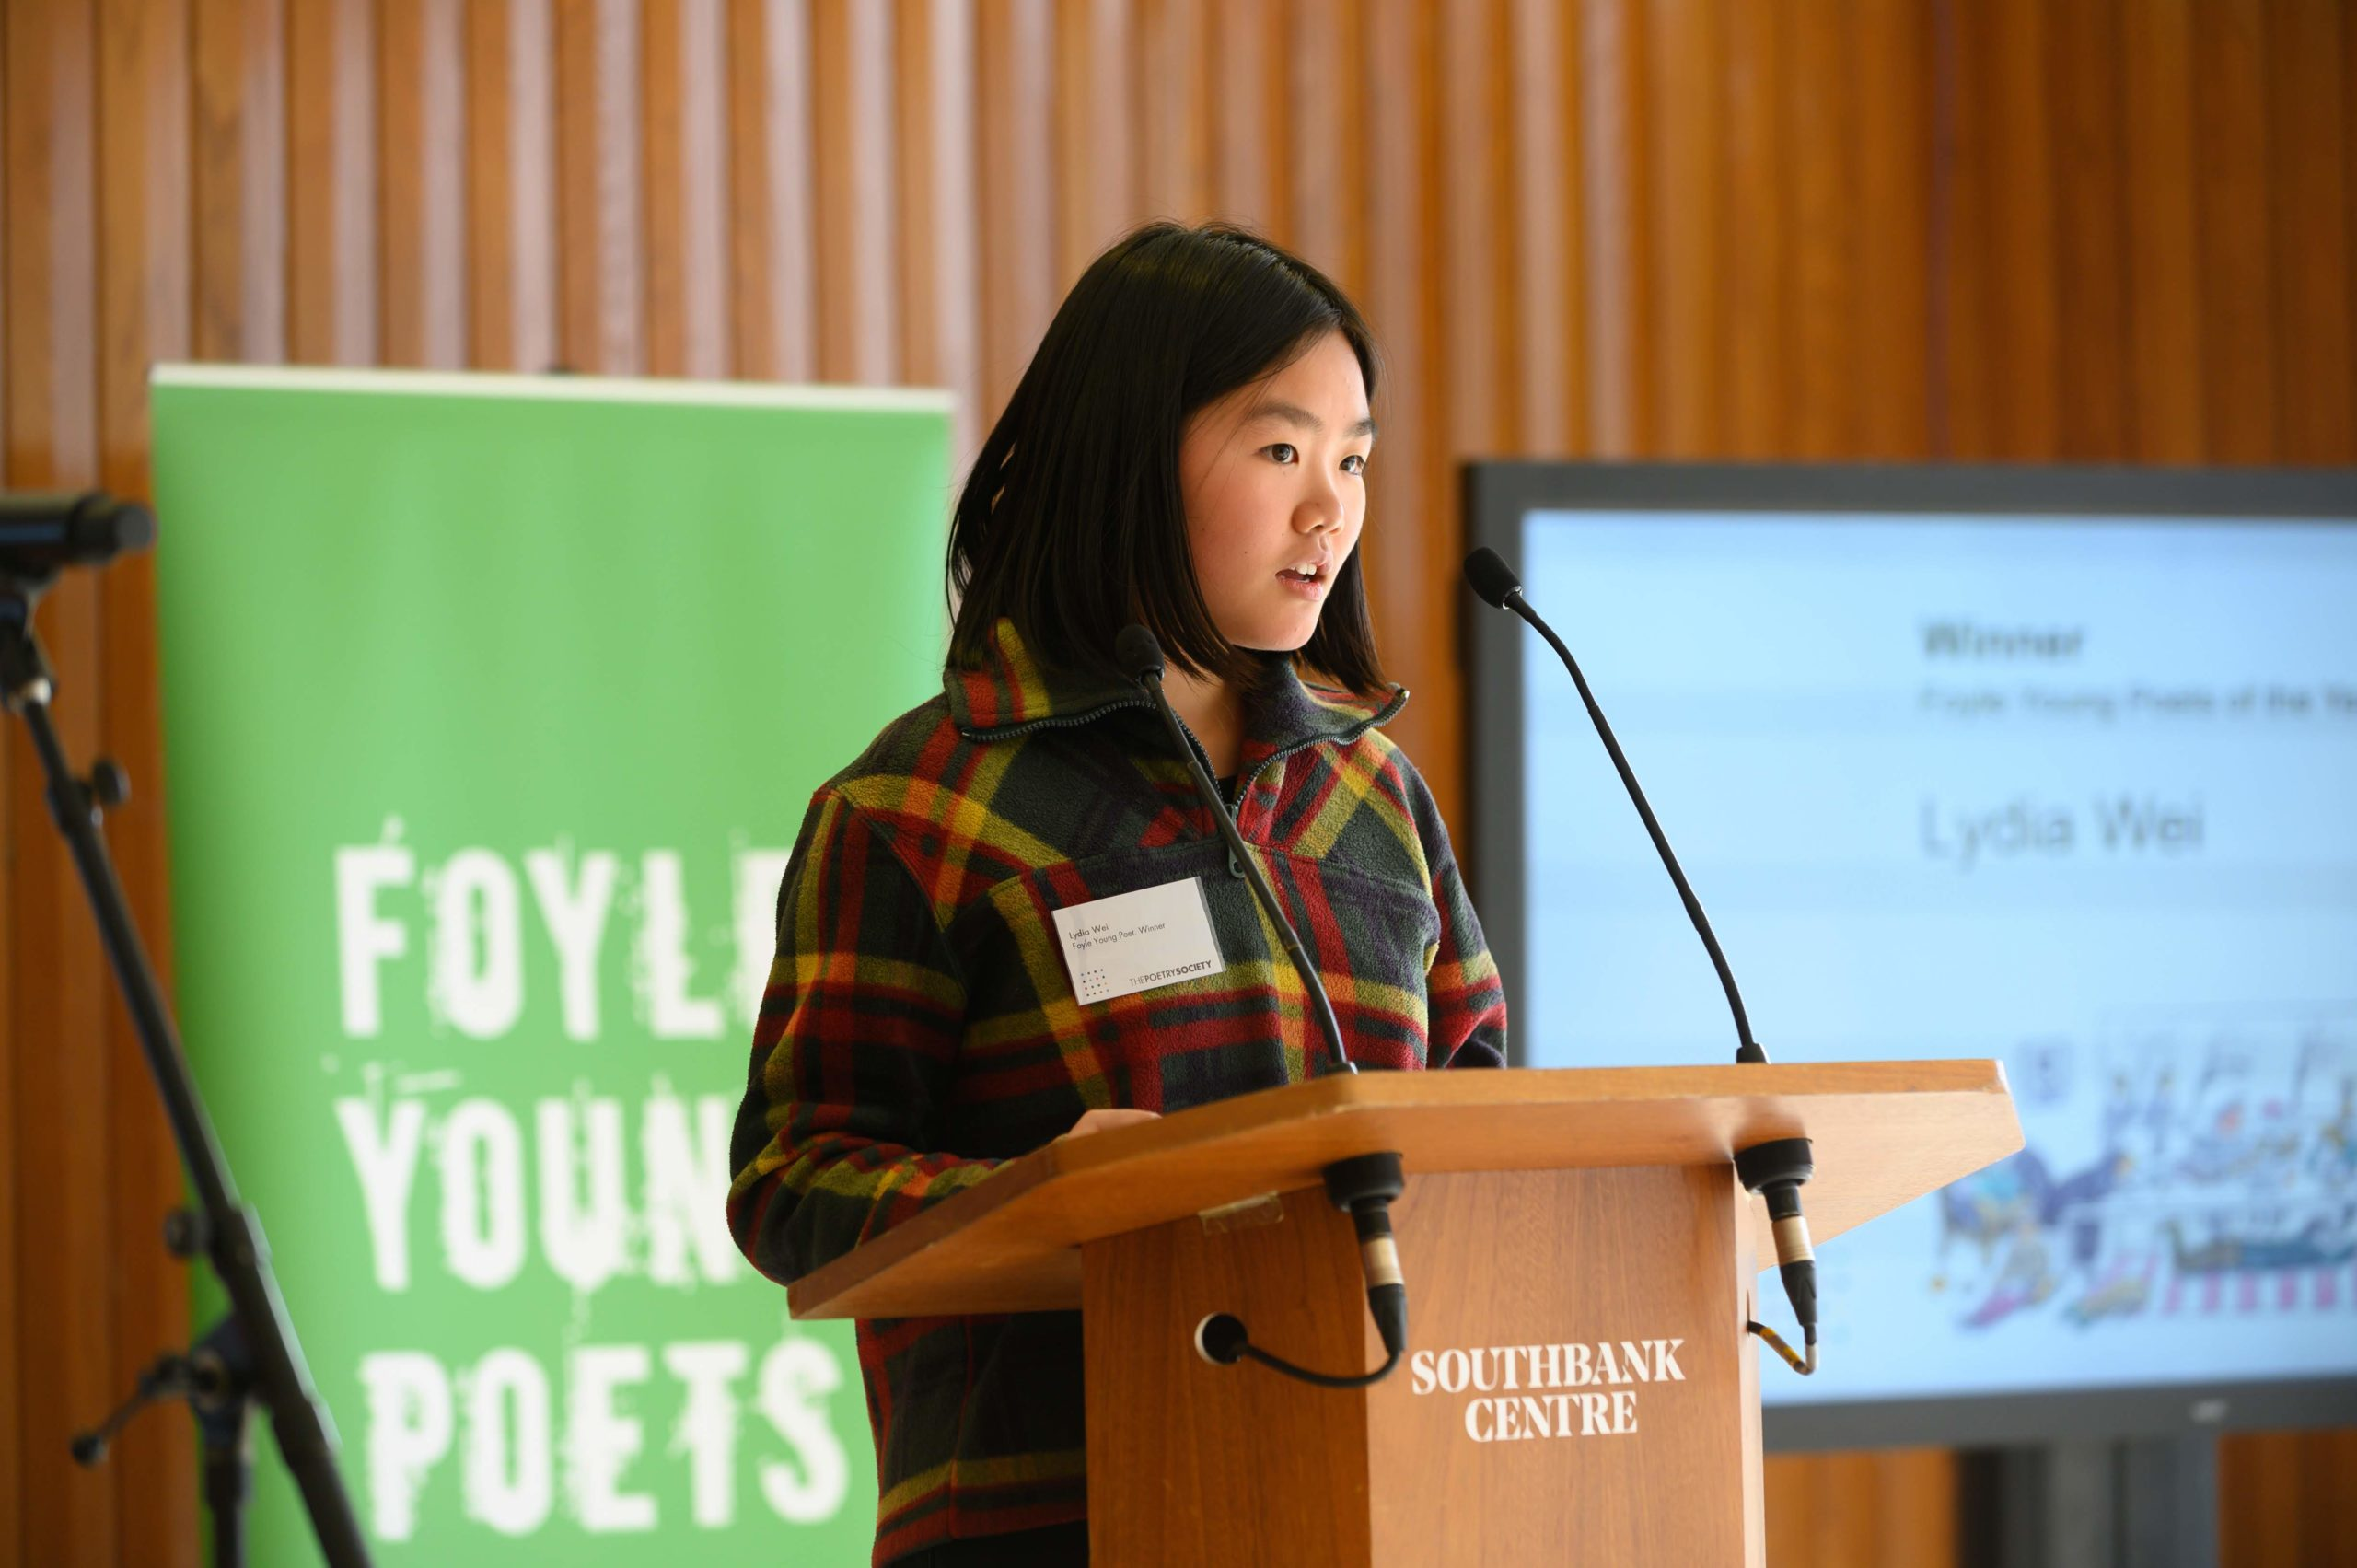 Lydia Wei performing at a podium with Foyle Young Poets in the background